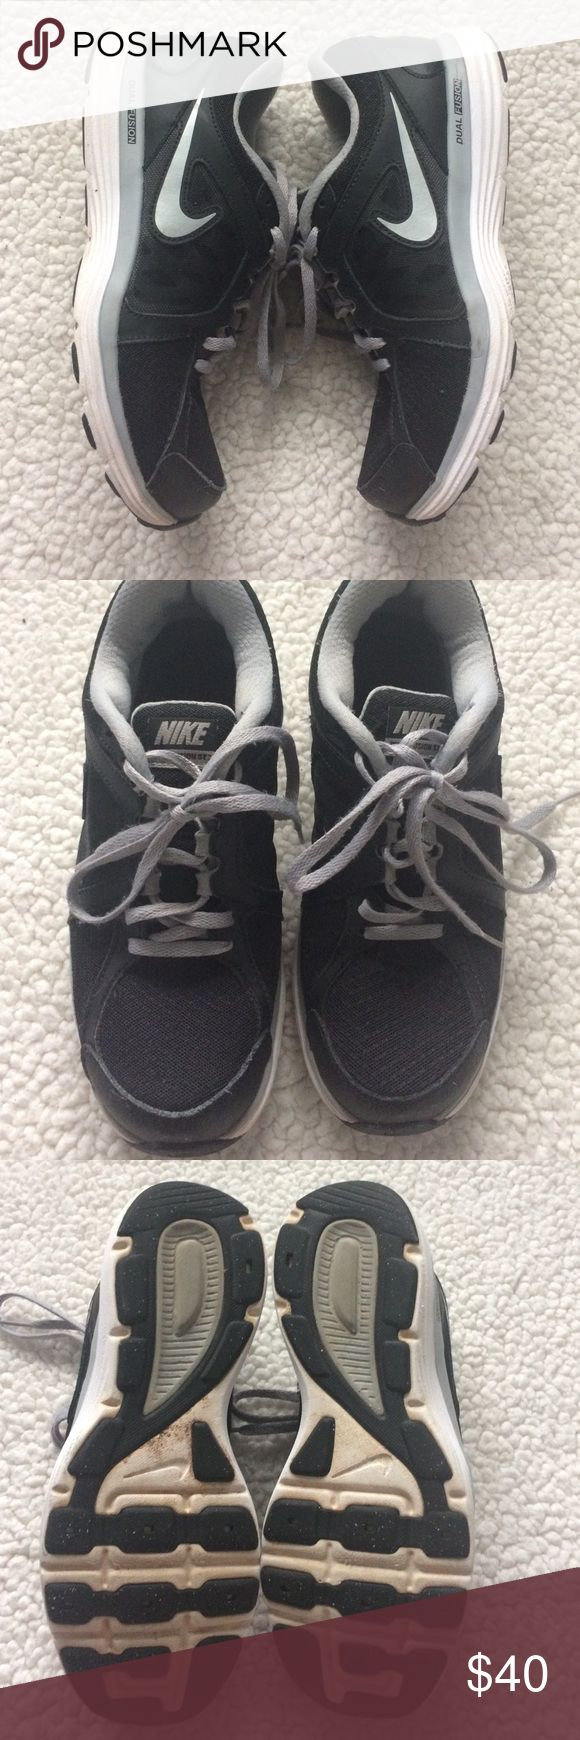 Nike Dual Fusion Black + Grey Good used condition, grey, black and white with silver logo. Some signs of wear - see photos for detail. Still with life left Nike Shoes Athletic Shoes